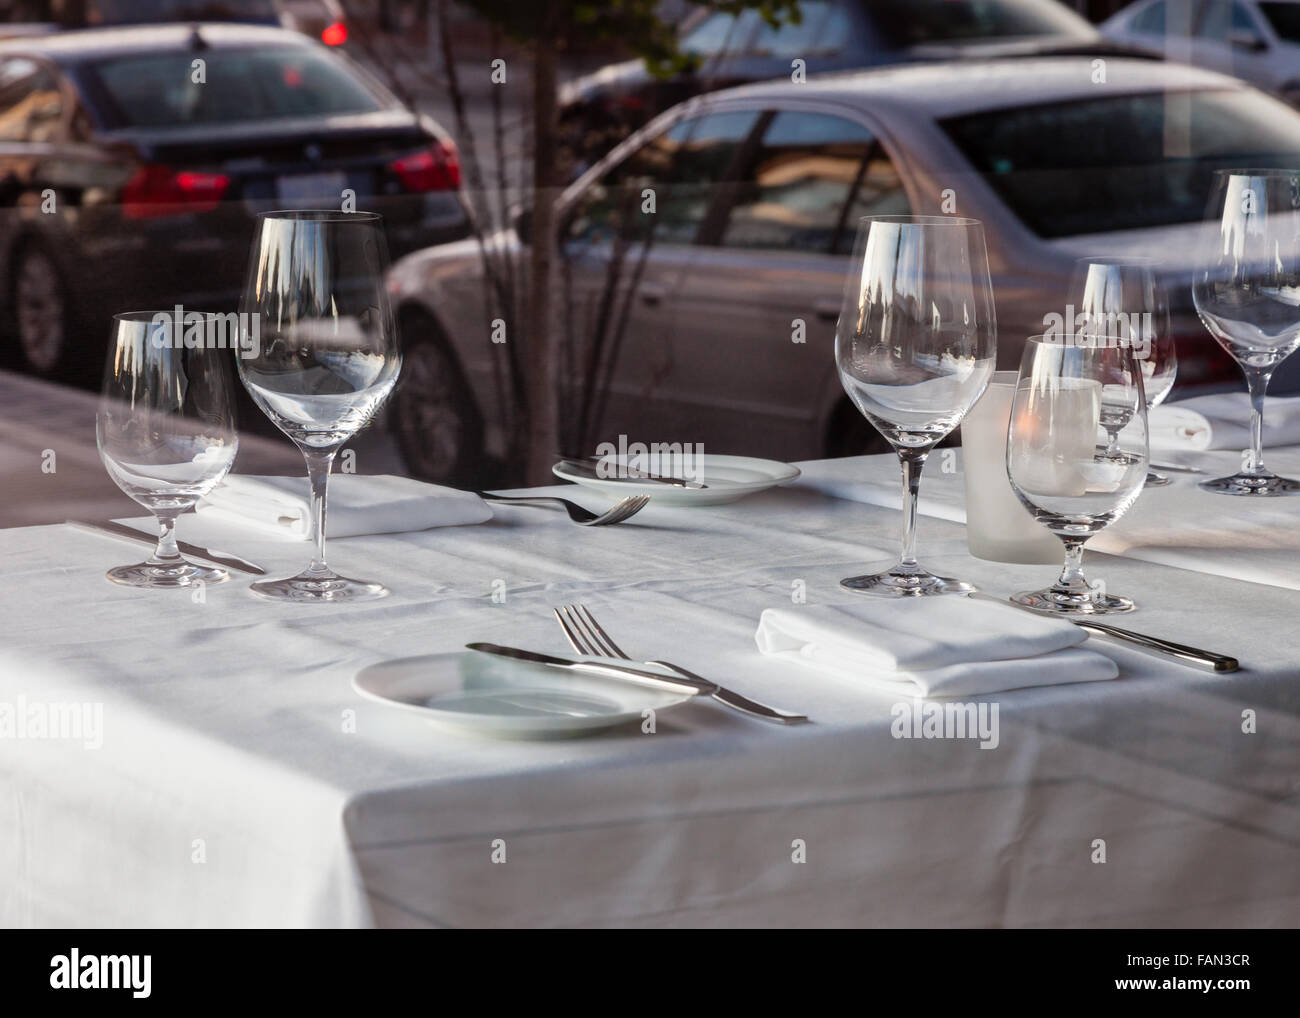 Fine dining Table setting in a restaurant with white tablecloth napkins and wine glasses. - Stock Image